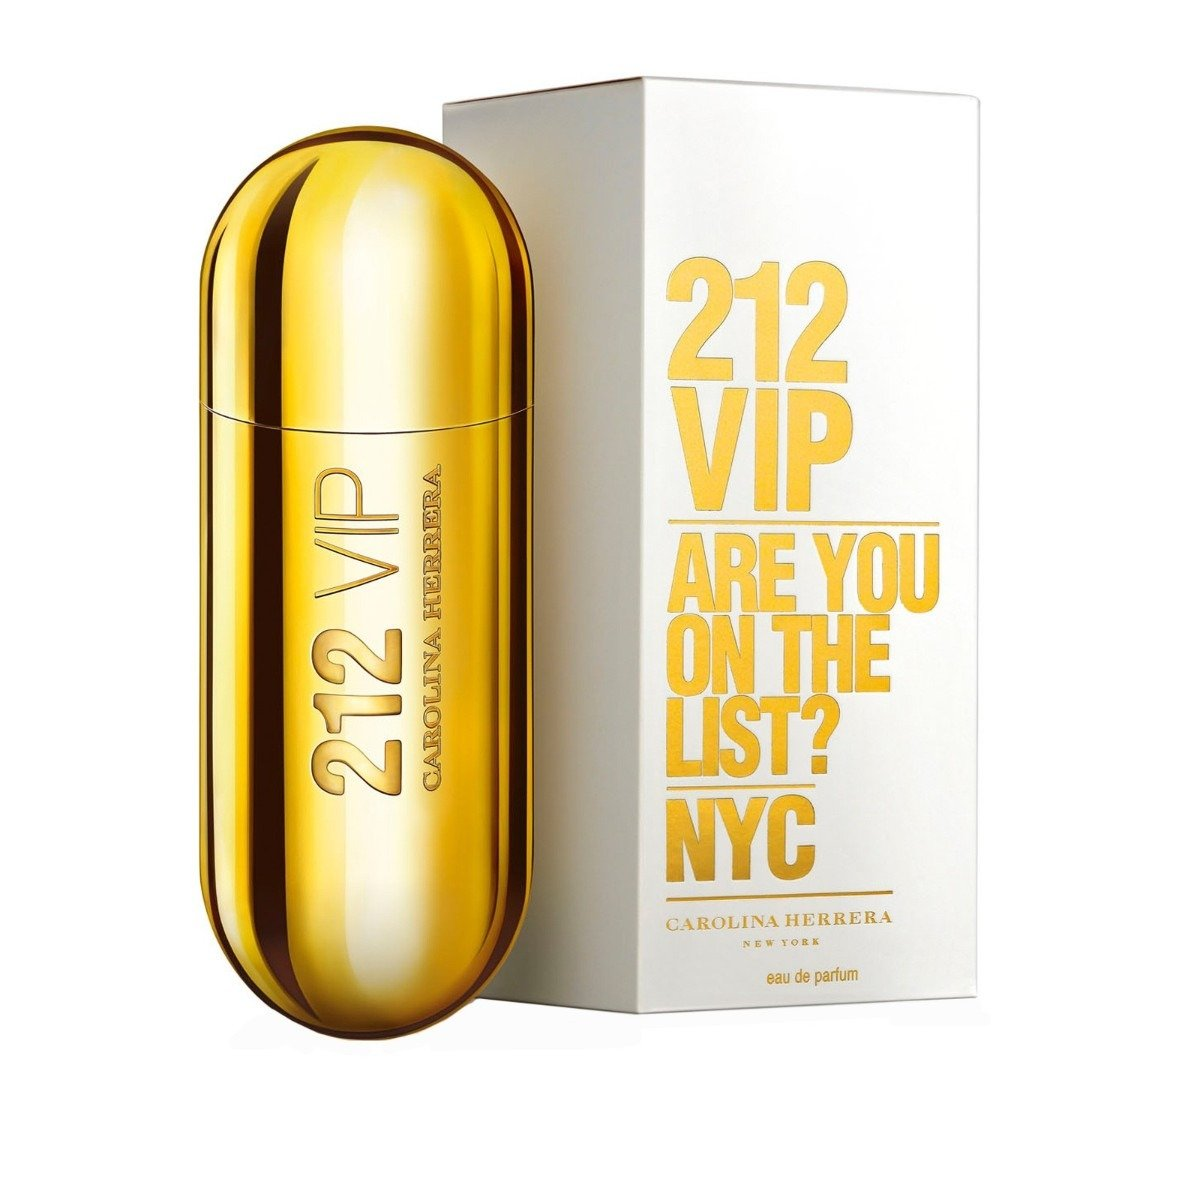 9eafad05a Amazon.com   Carolina Herrera 212 VIP Eau de Parfum Spray